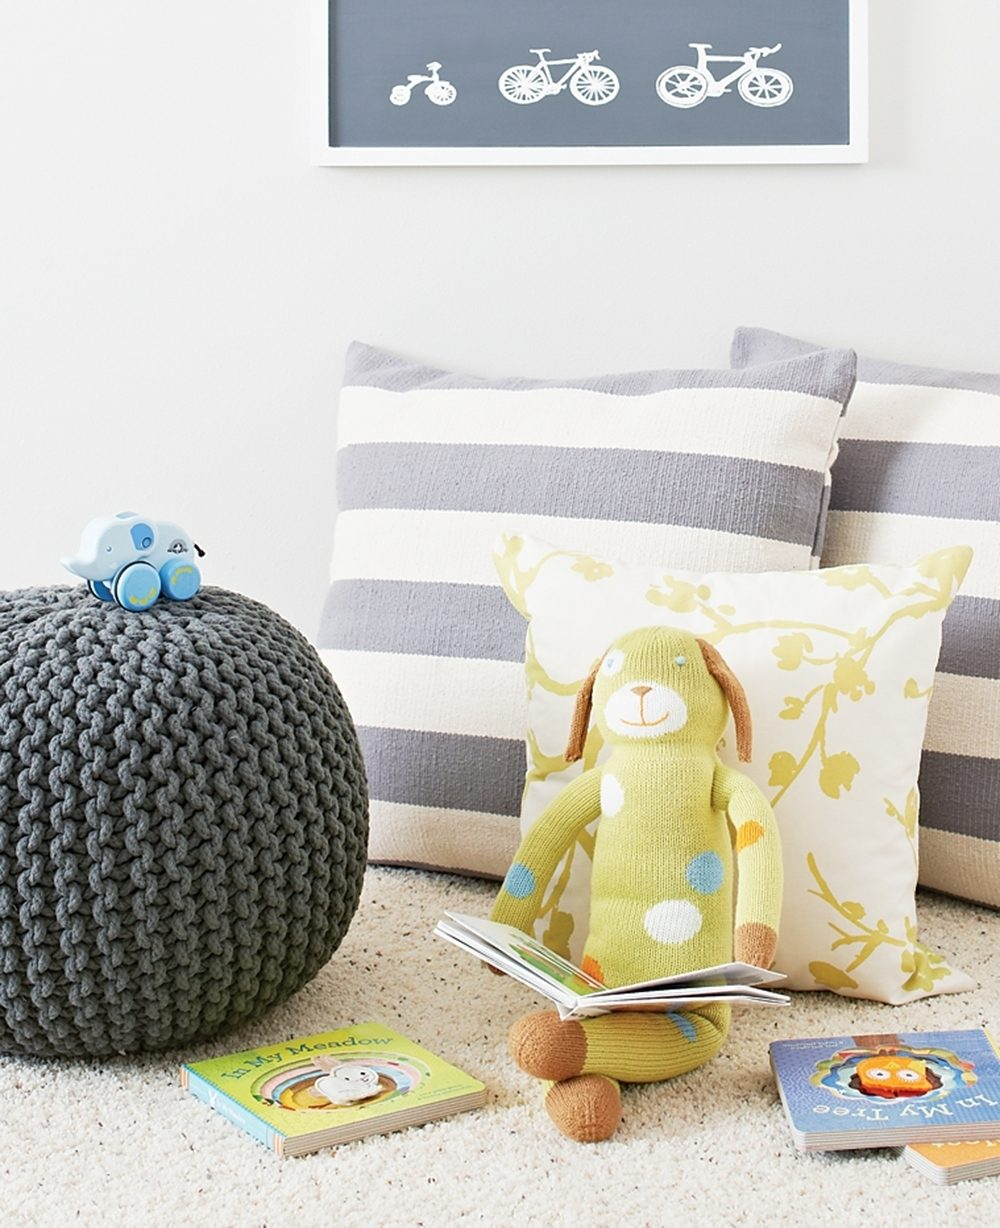 A reading nook in a baby's nursery is outfitted with pillows, a knitted pouf, a stuffed dog and books.